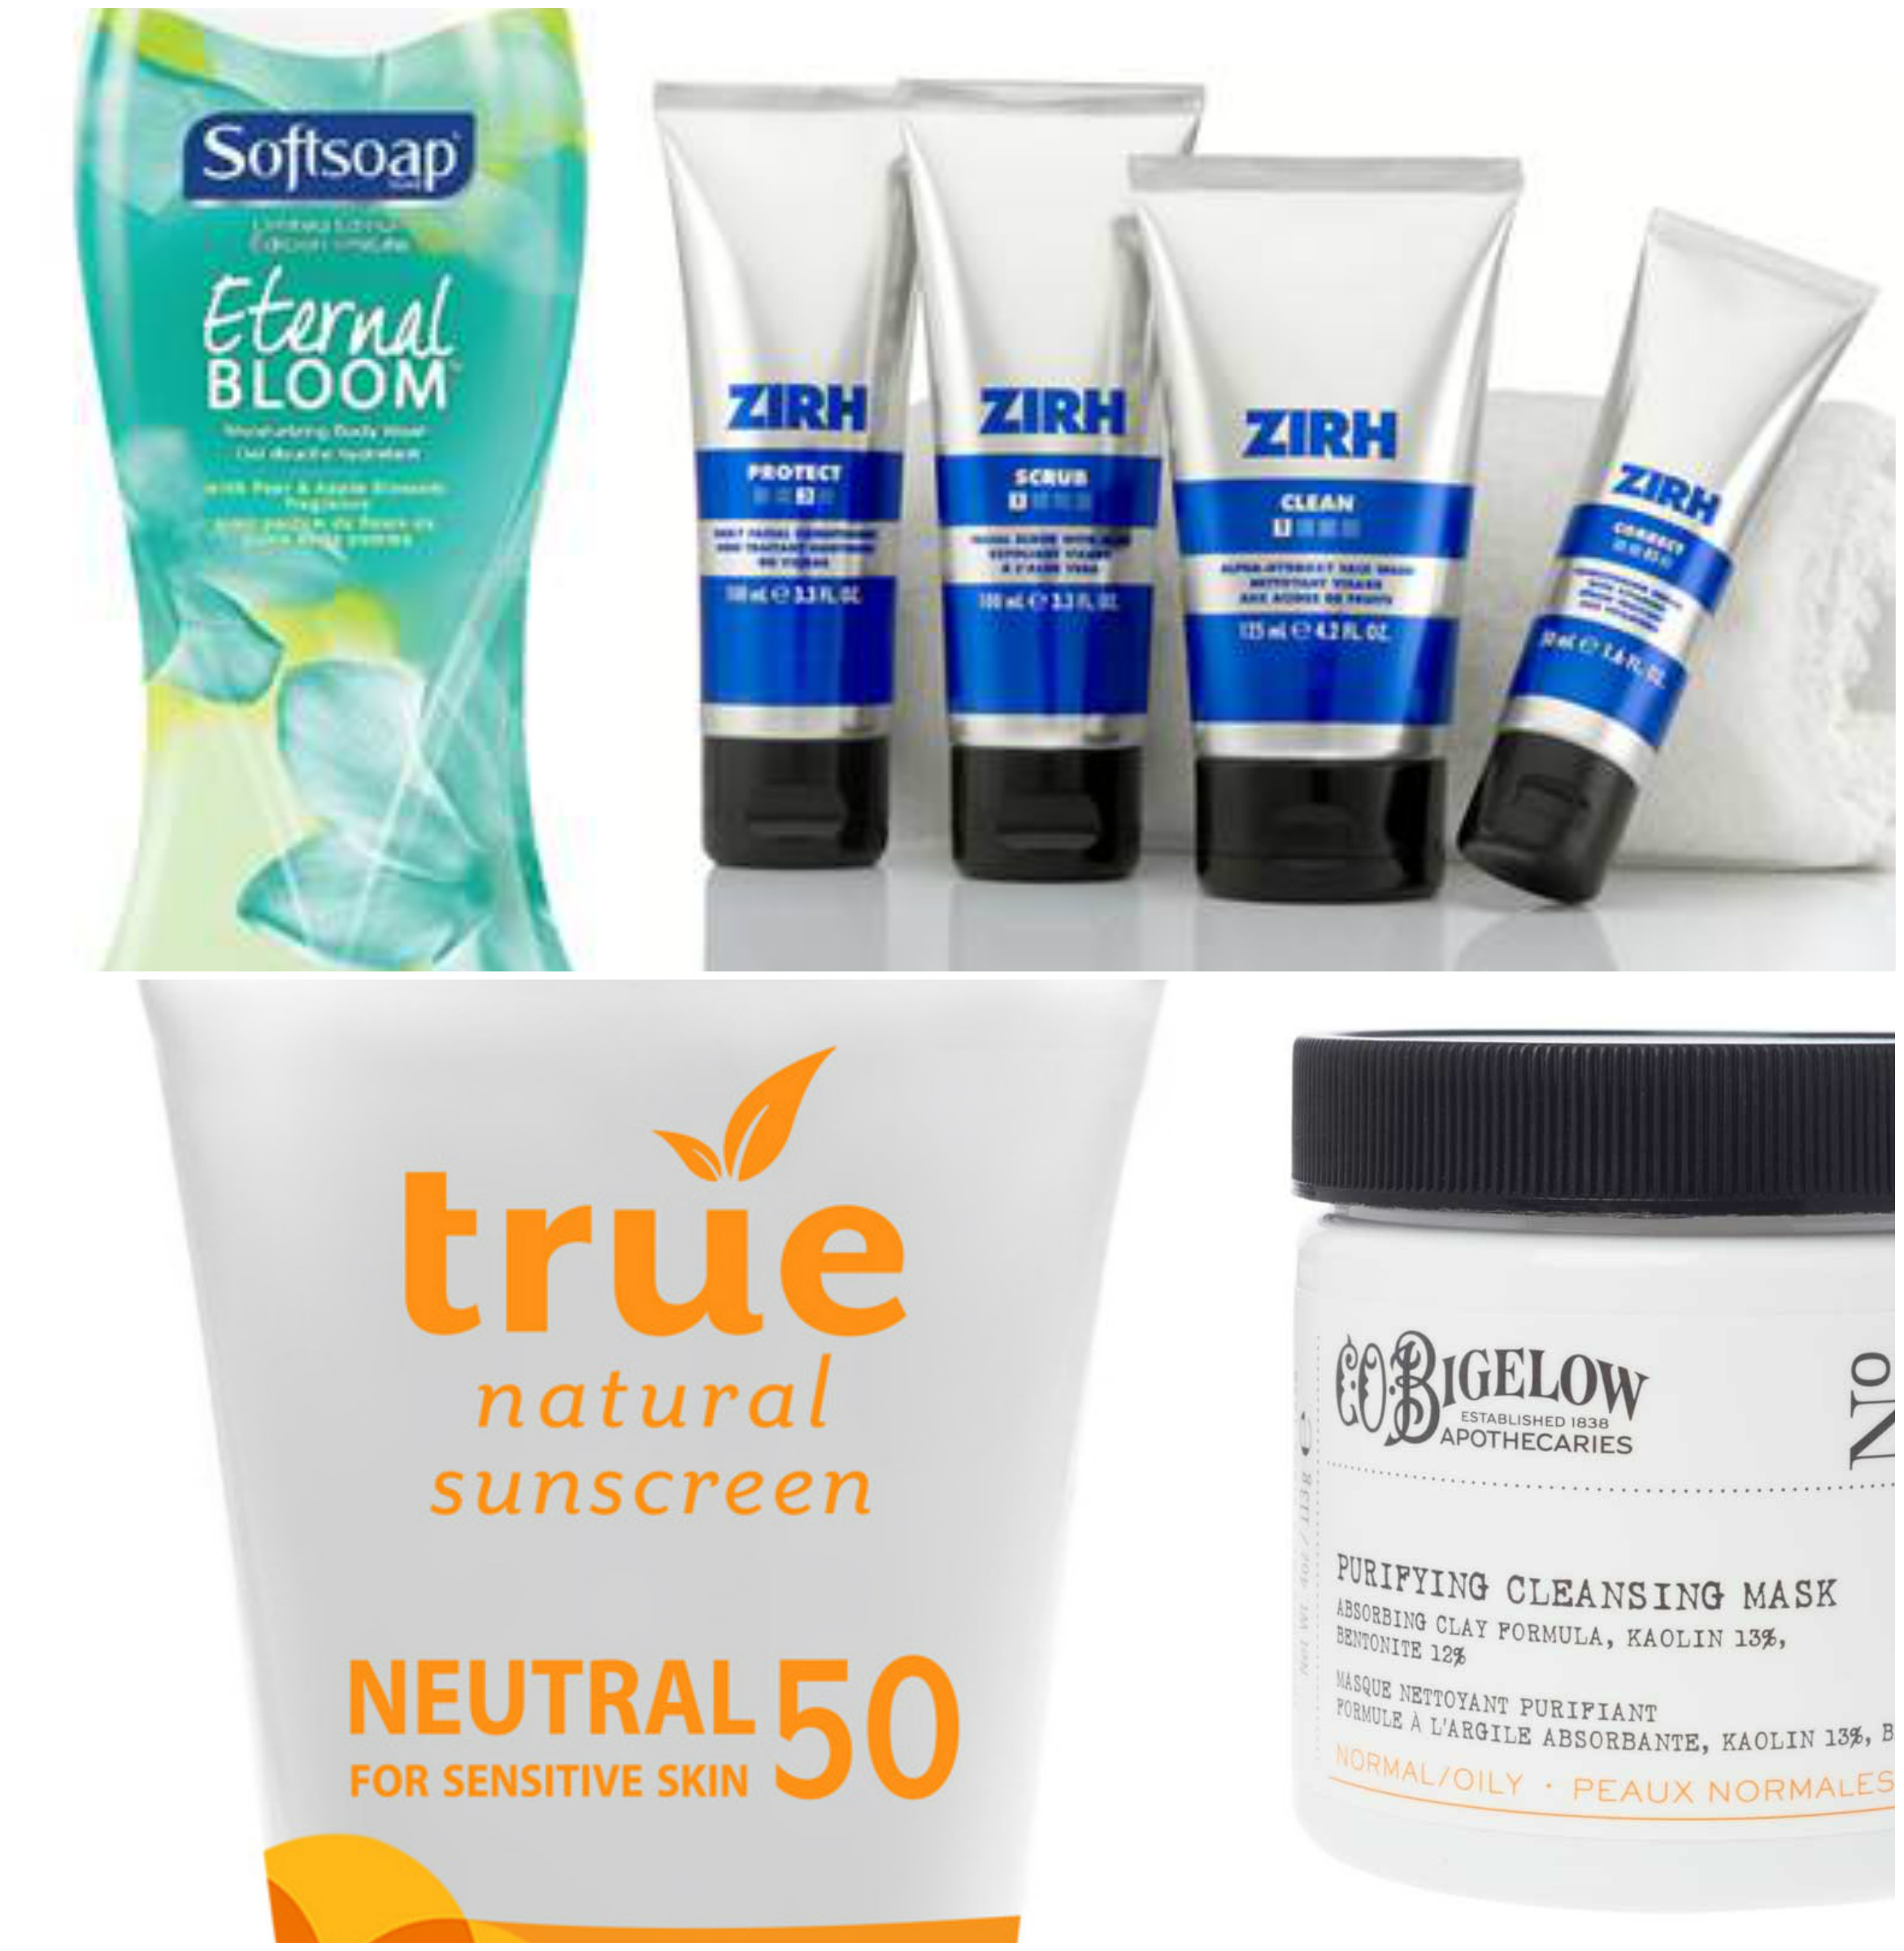 New health and beauty finds for the entire family #FridayFinds